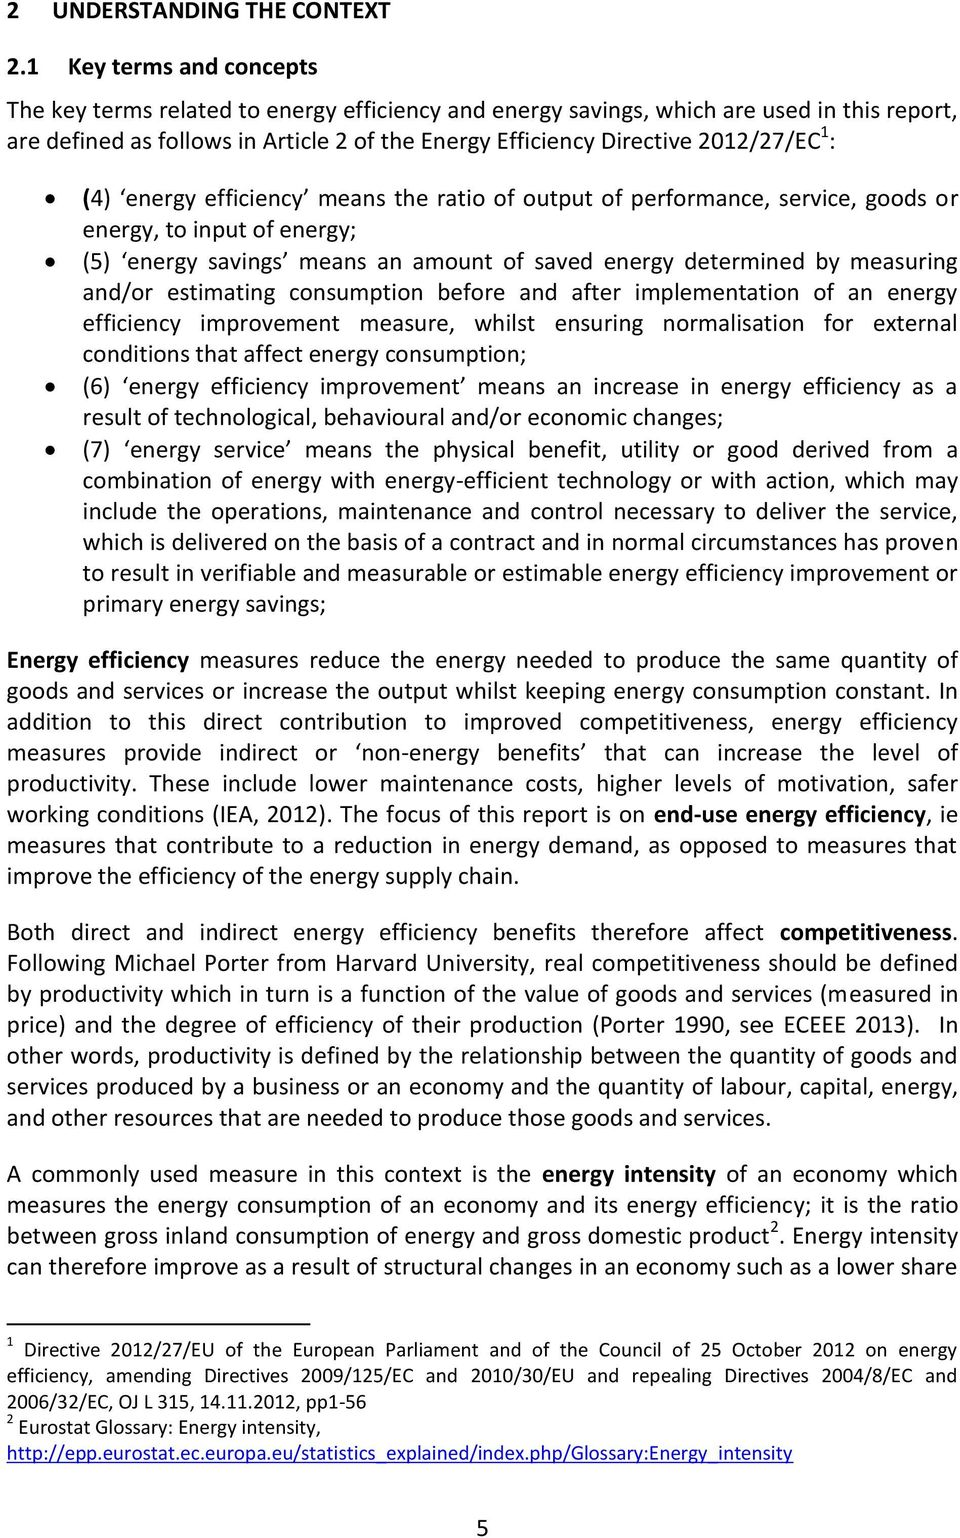 2012/27/EC 1 : (4) energy efficiency means the ratio of output of performance, service, goods or energy, to input of energy; (5) energy savings means an amount of saved energy determined by measuring